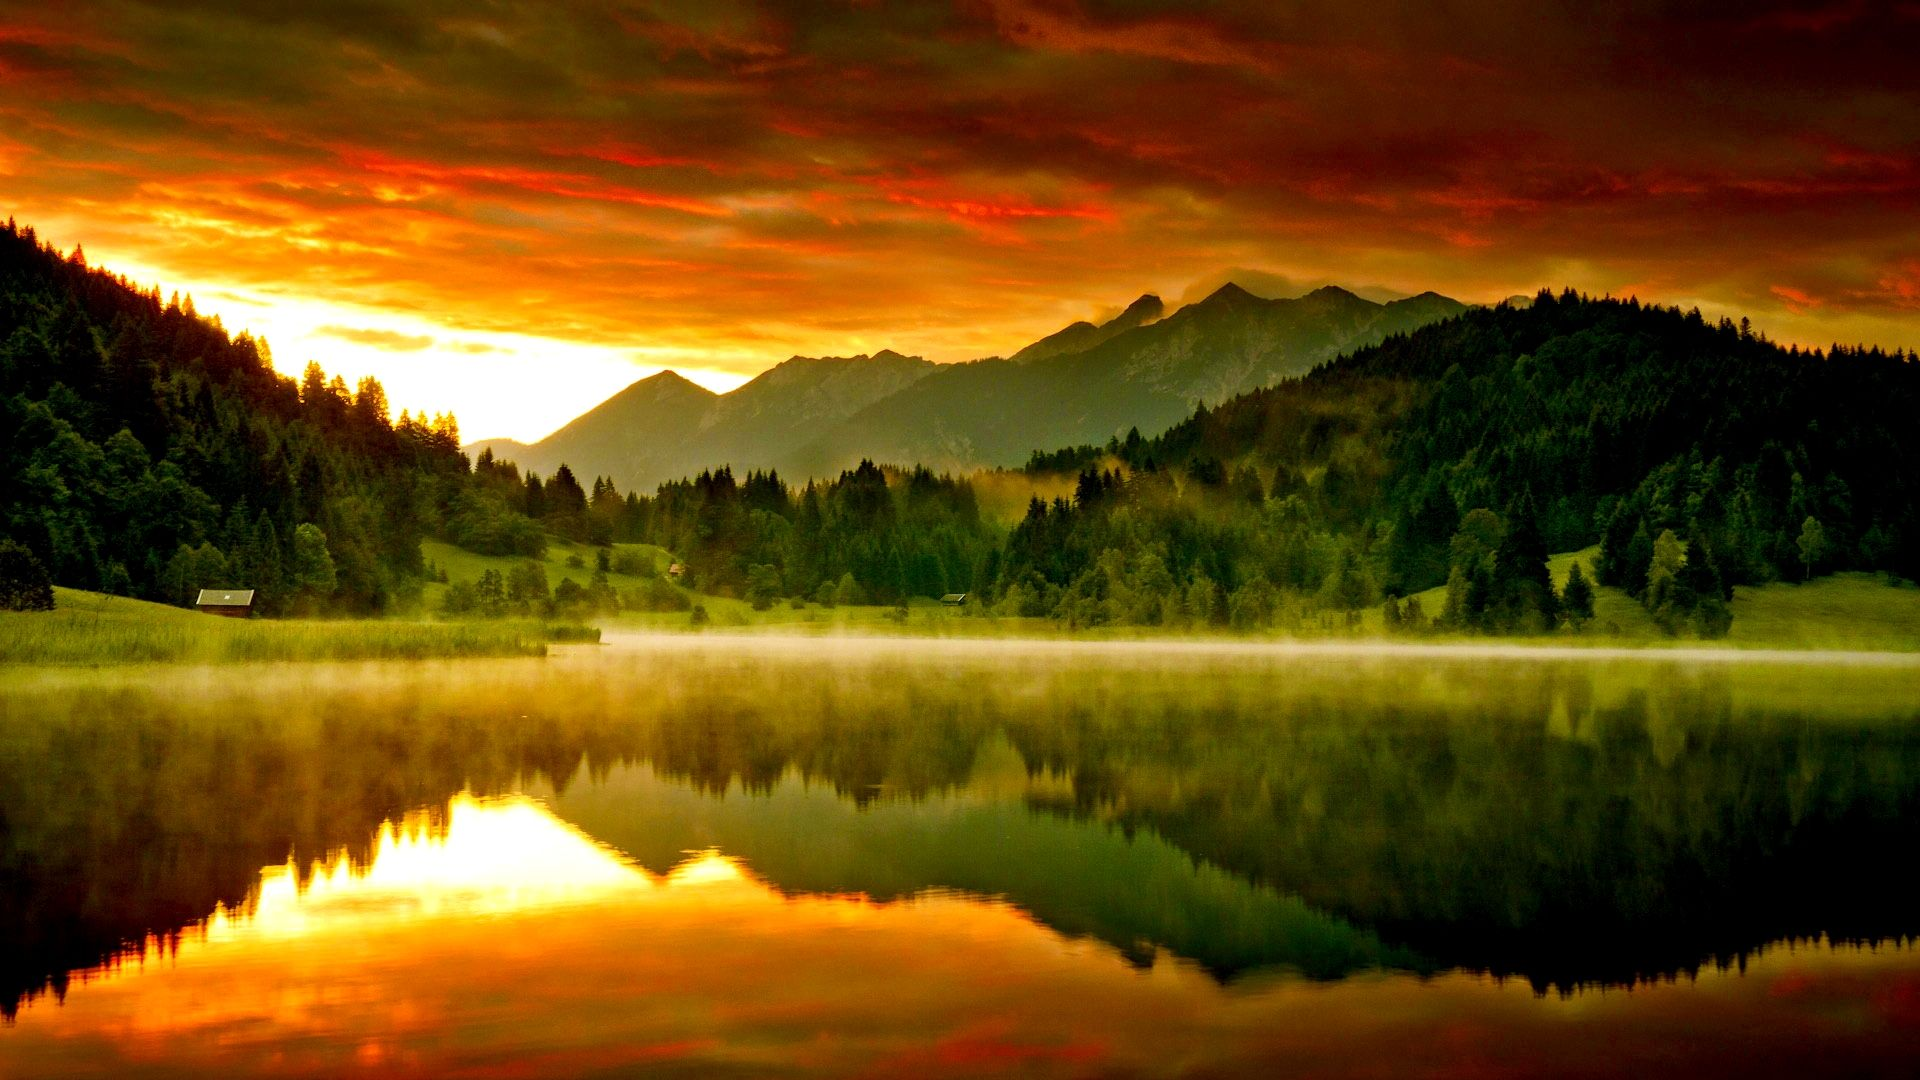 Misty Lake At Sunset Wallpapers Hd Free 244766 Reflection